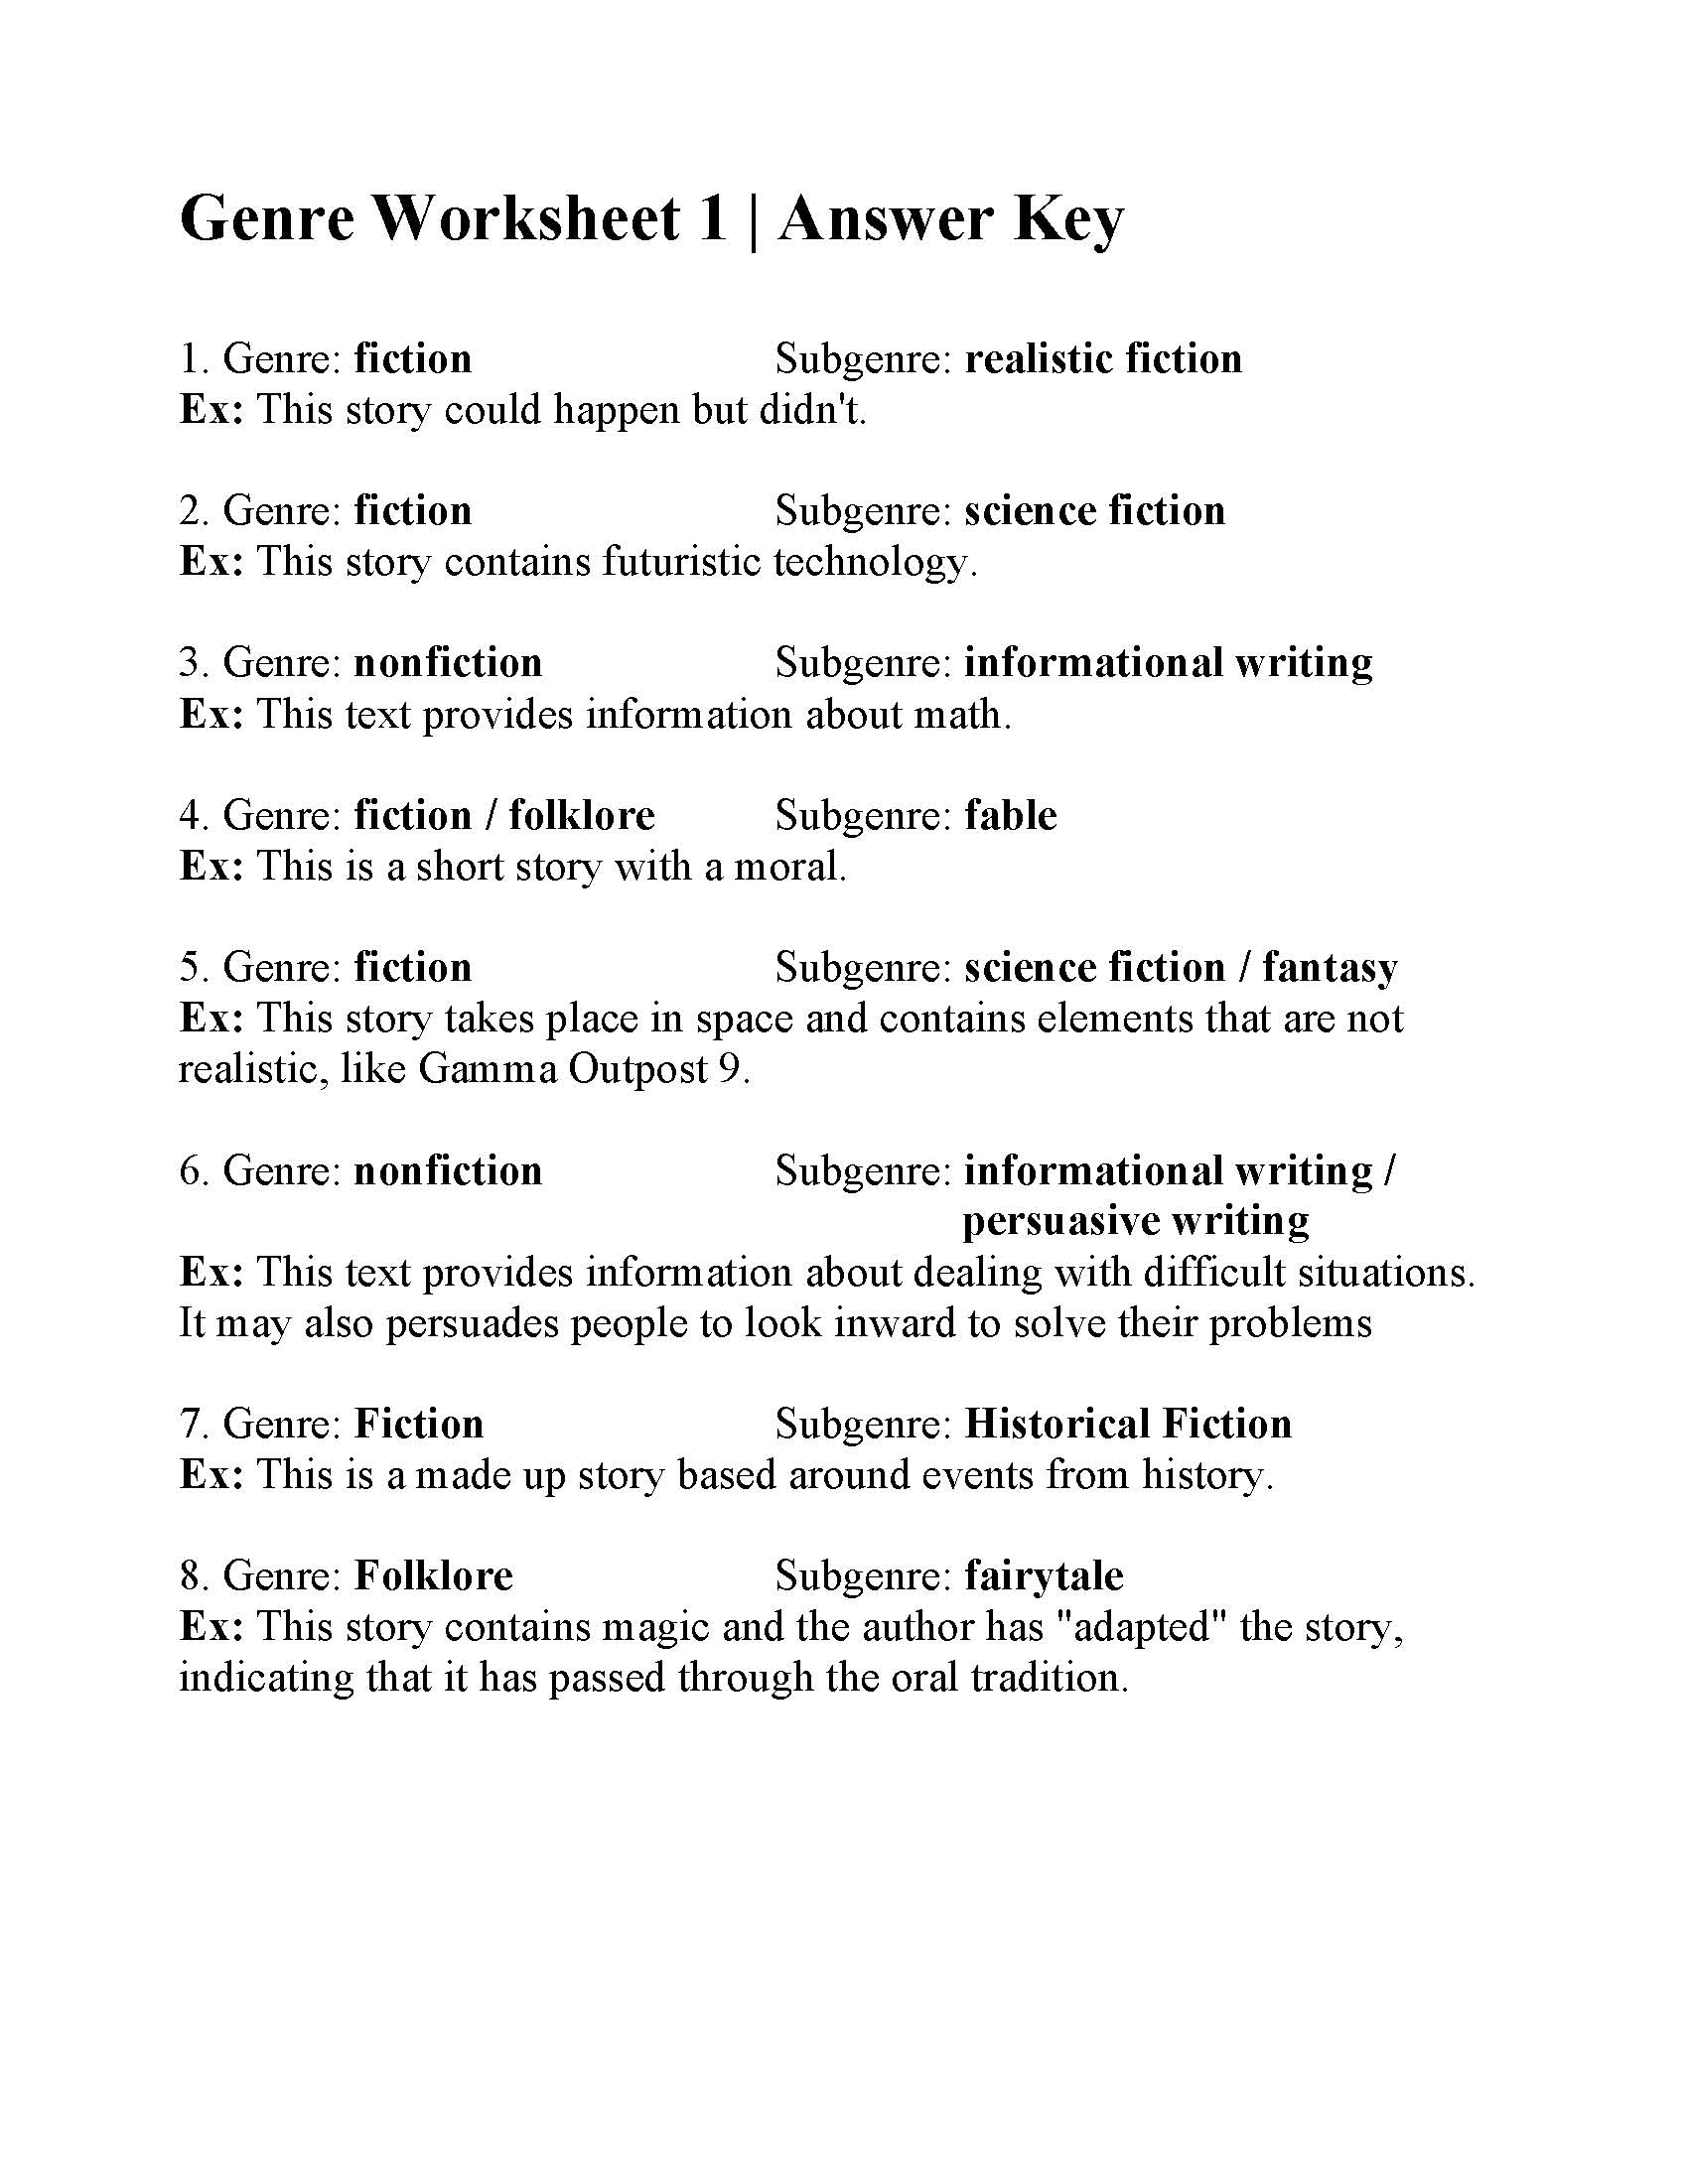 Genre Worksheet 1